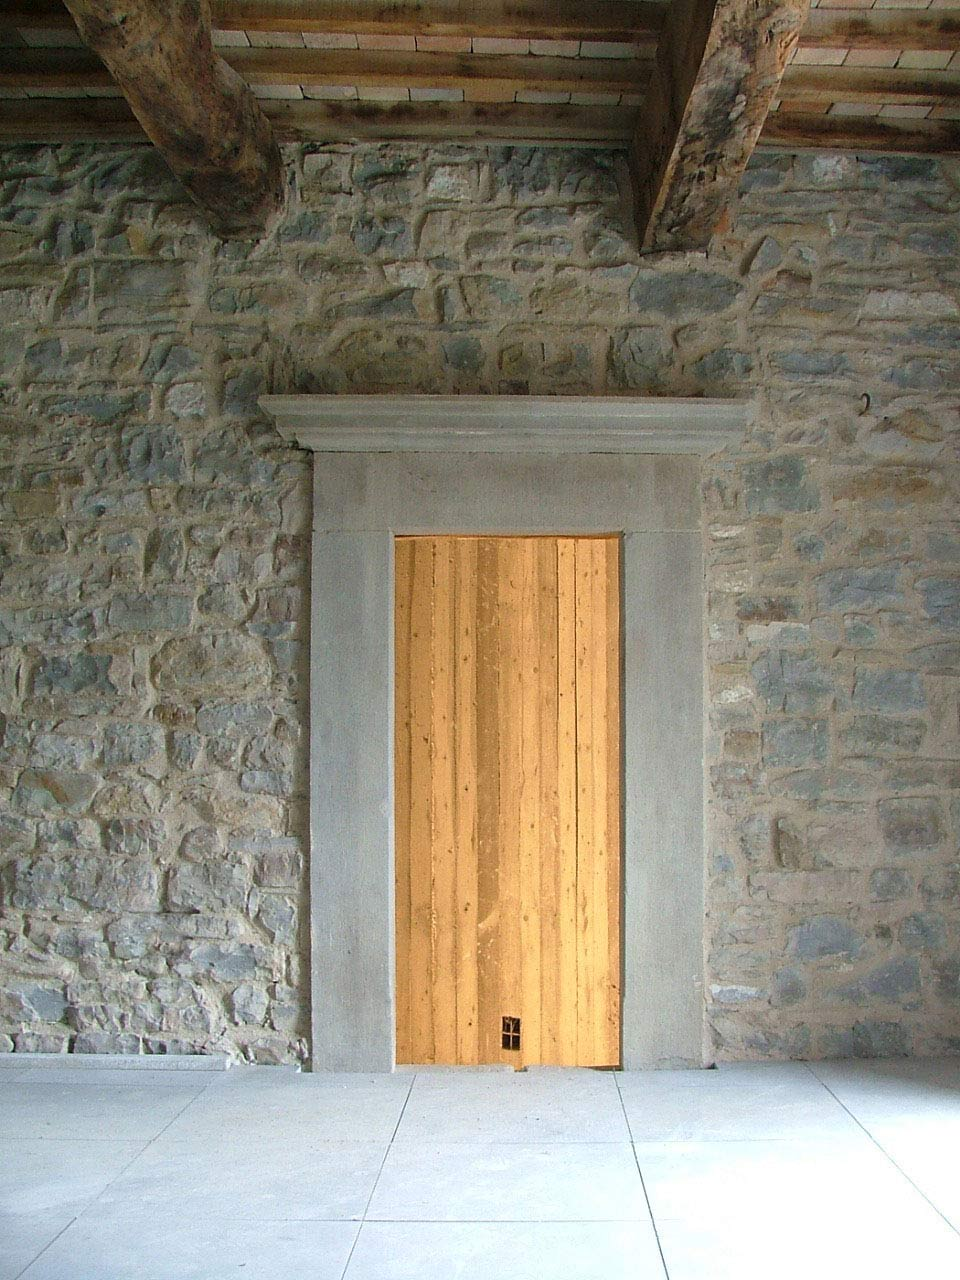 Stone Wall, Wooden Door, Torre Moravola Boutique Hotel in Montone, Italy